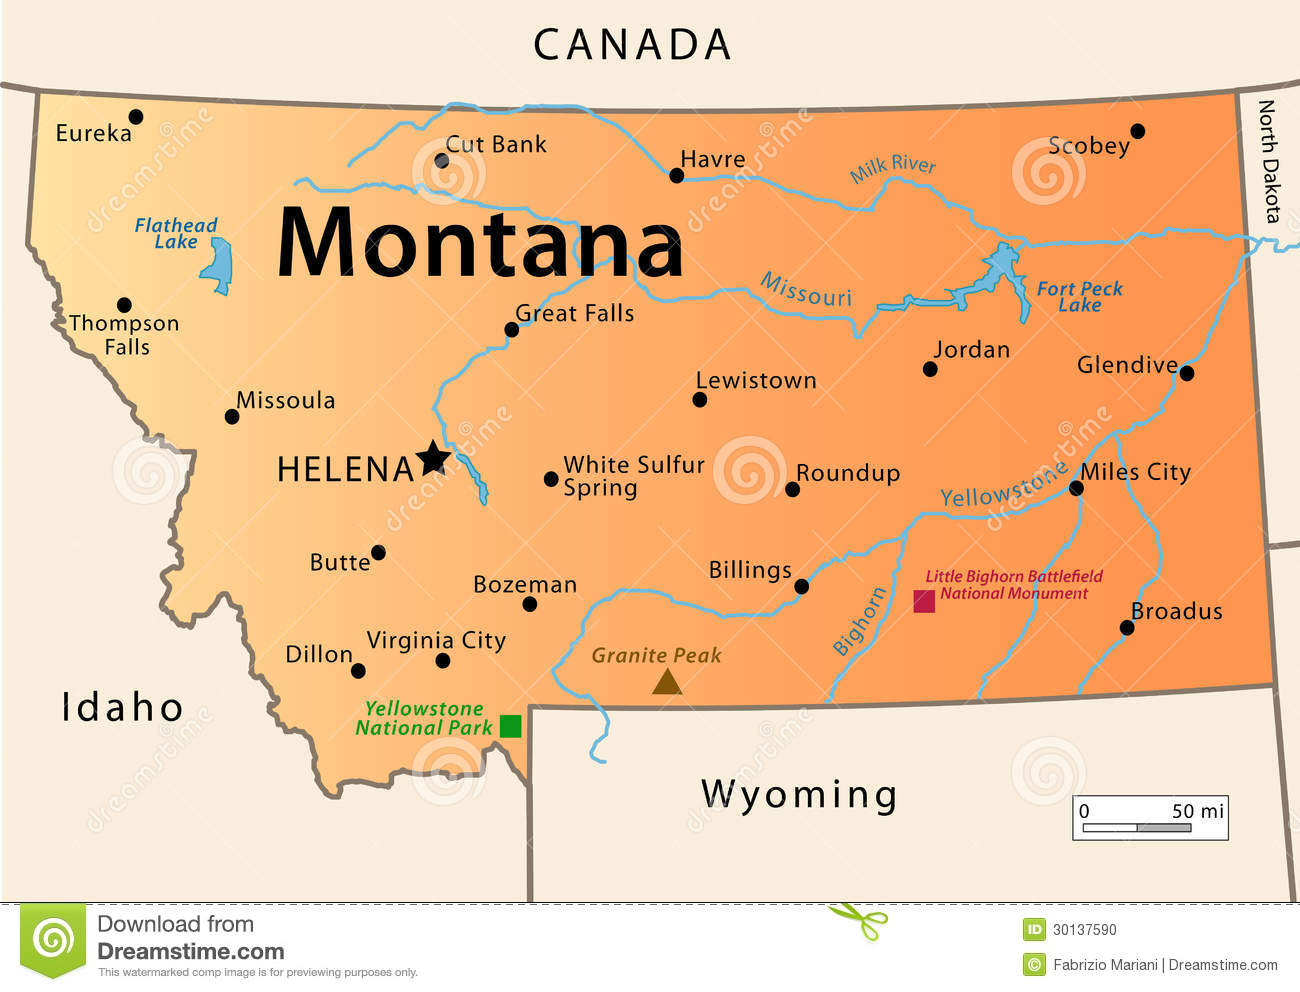 state of wyoming map with Stock Photo Illustration Map Great State Montana Usa Featuring Its Main Cities Rivers Lakes Highest Peak State Image30137590 on Idaho likewise Hawai in addition Florida besides 772545028194041858 in addition Wyoming.